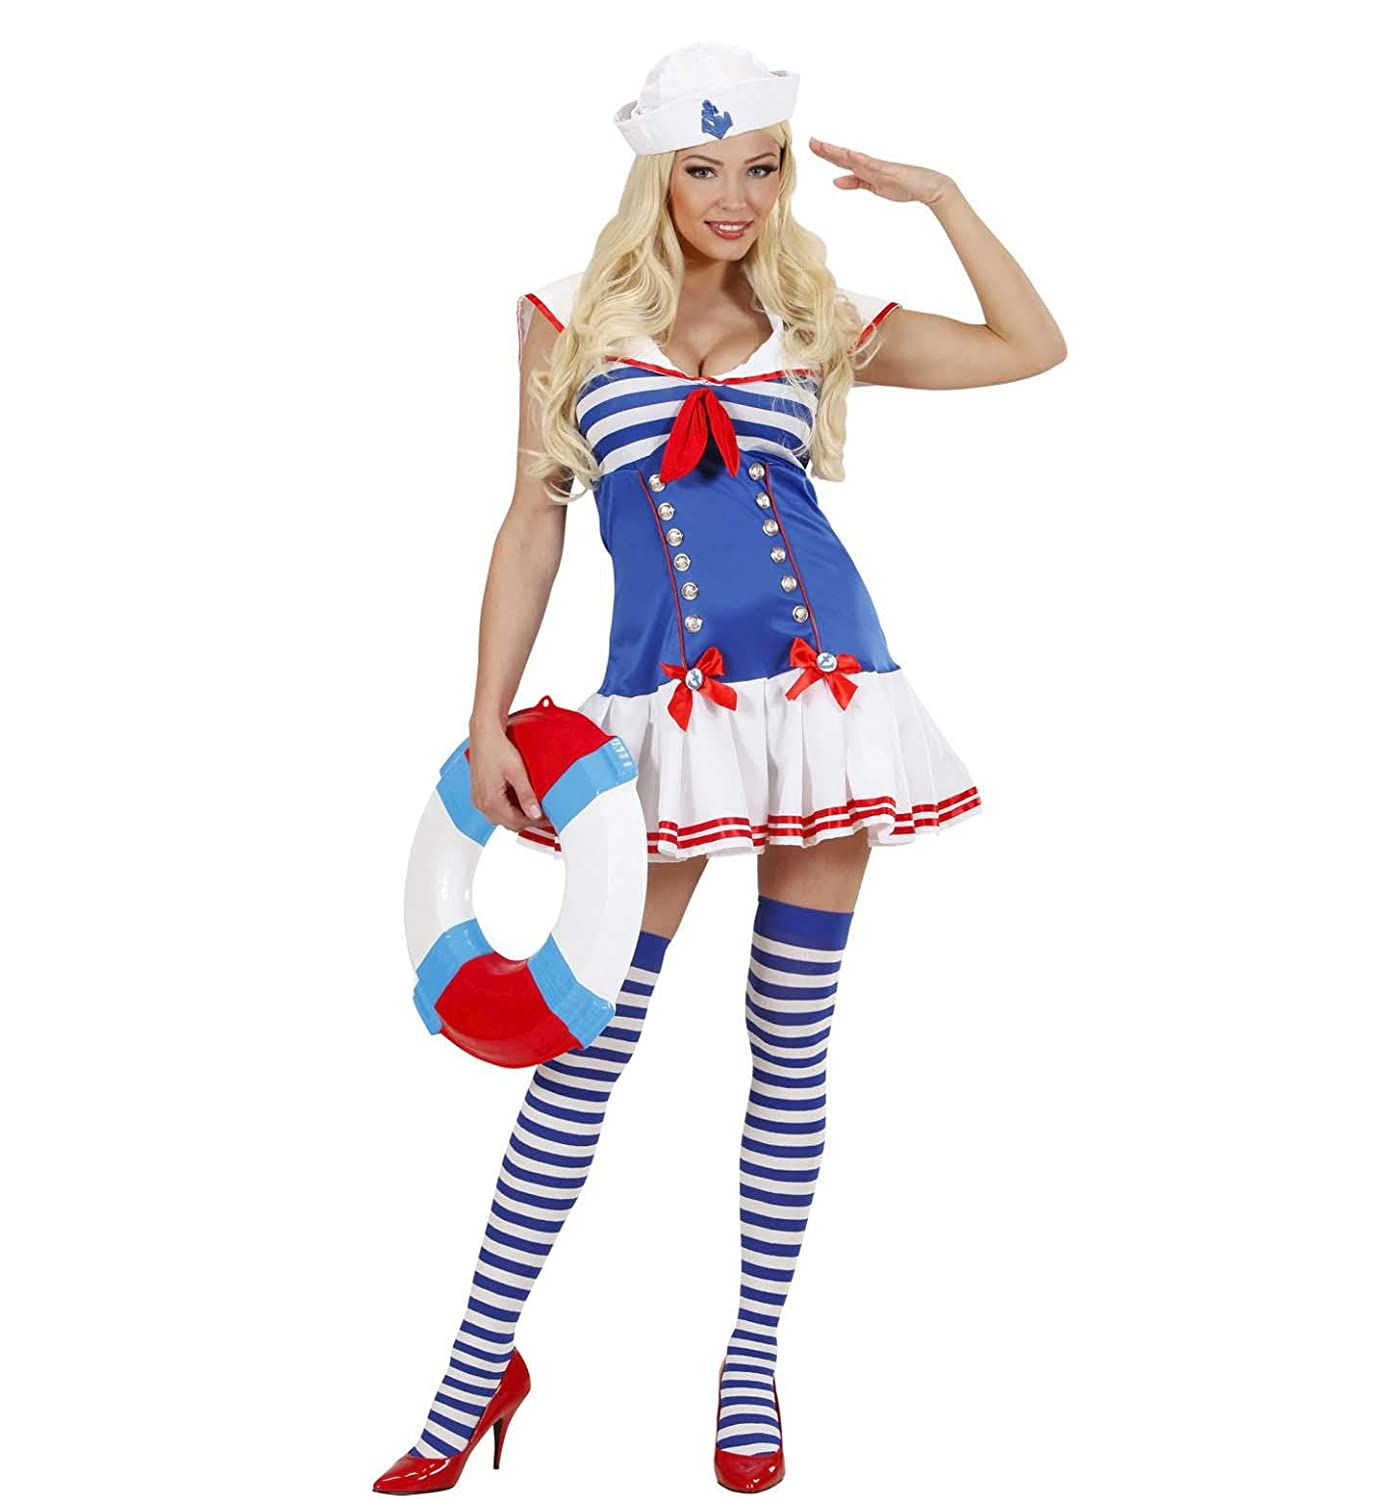 Ladies Sailor Girl Costume Large UK 14-16 for Navy Sea Fancy Dress Amazon.co.uk Toys u0026 Games  sc 1 st  Amazon UK & Ladies Sailor Girl Costume Large UK 14-16 for Navy Sea Fancy Dress ...